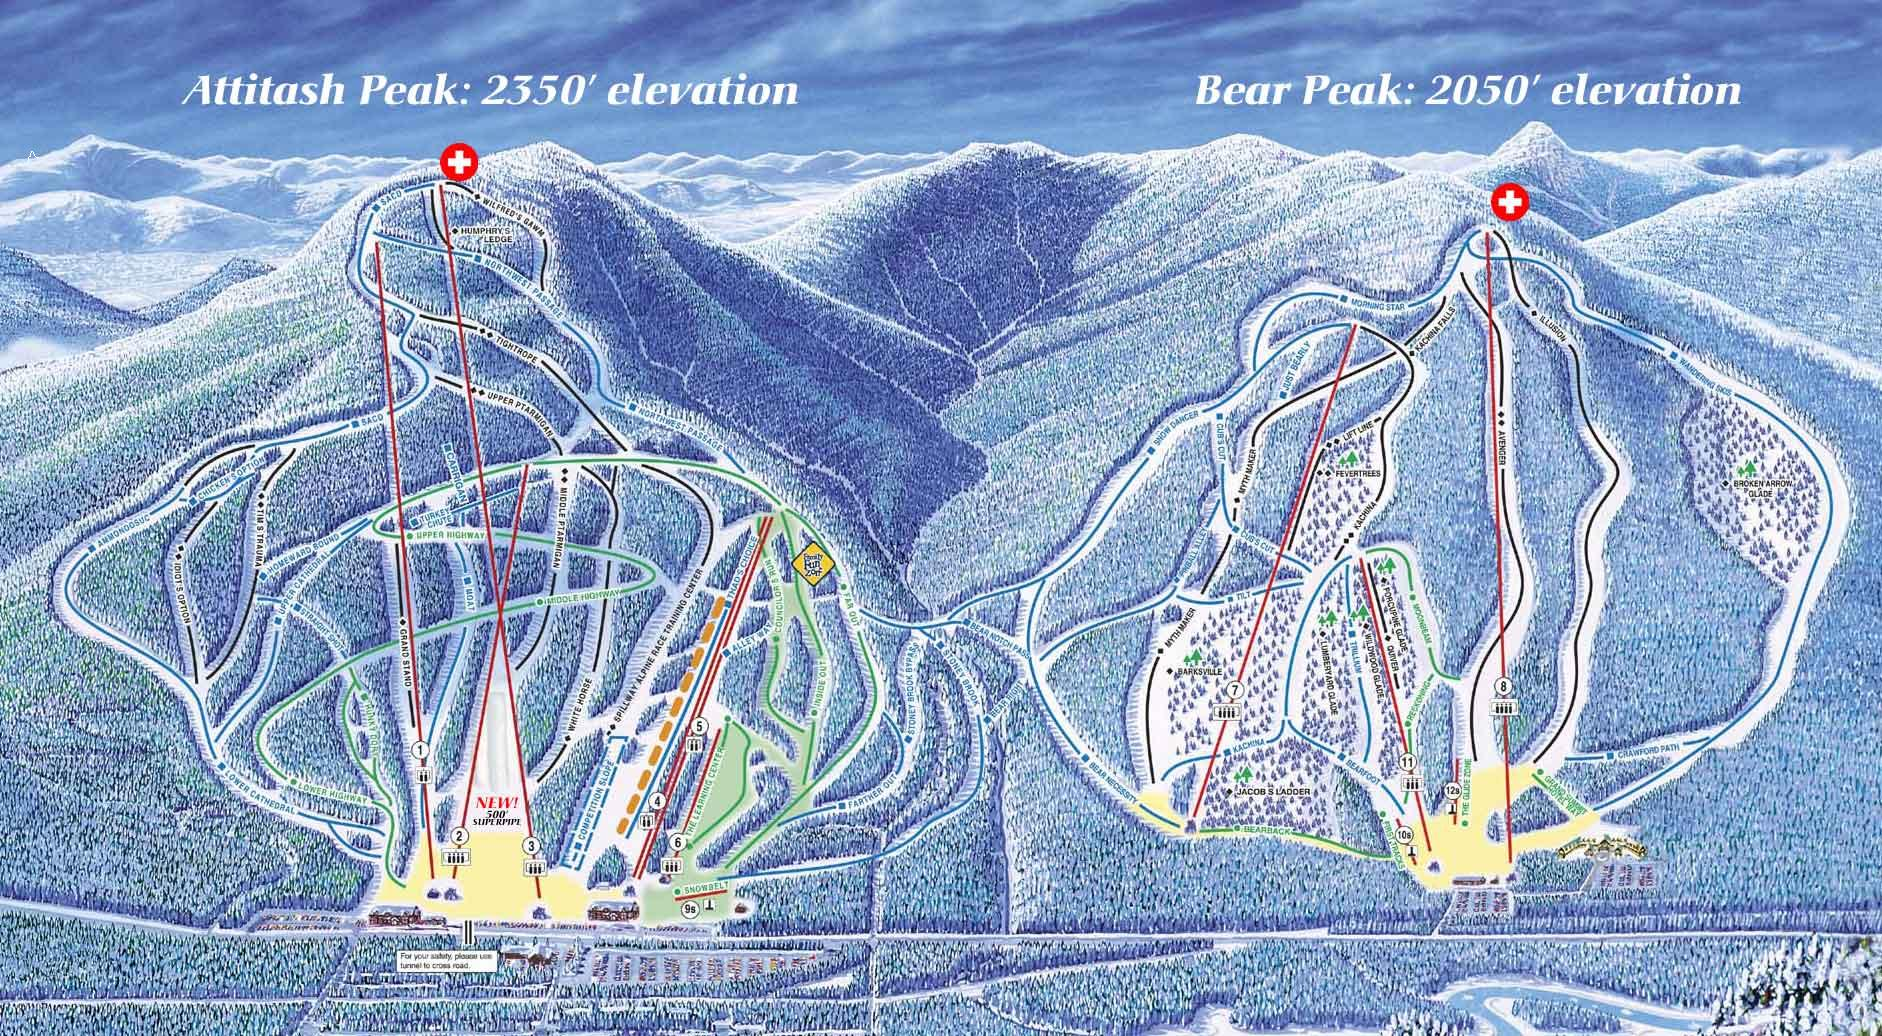 Attitash Bear Peak Piste / Trail Map